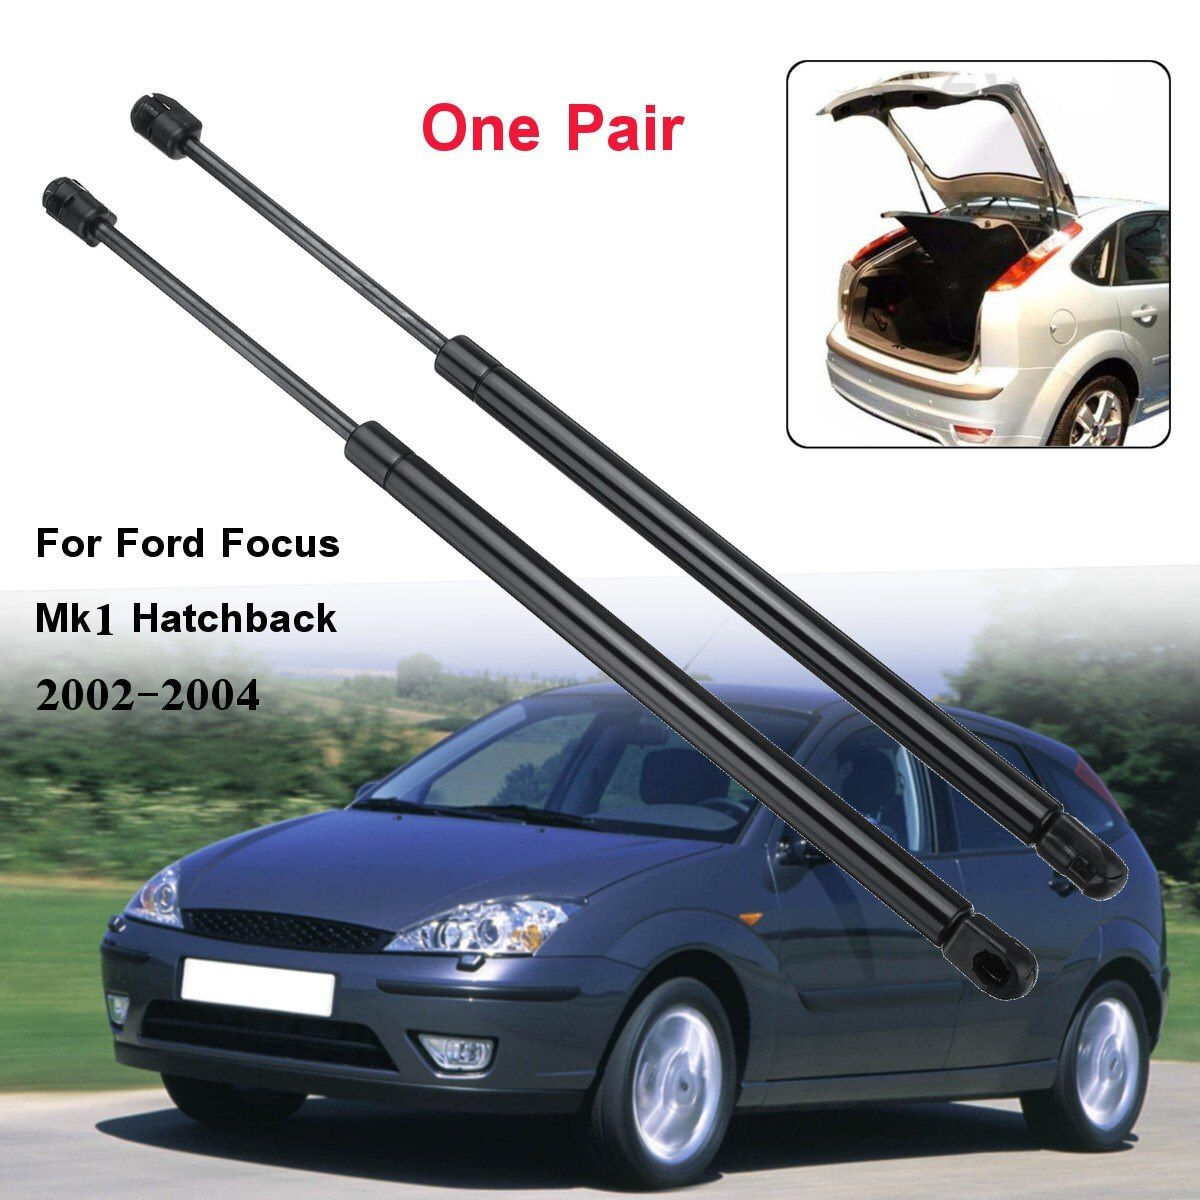 2Pcs 490mm Car Rear Tailgate Boot Gas Struts Support for Ford for Focus Mk1 Hatchback 1998-2004